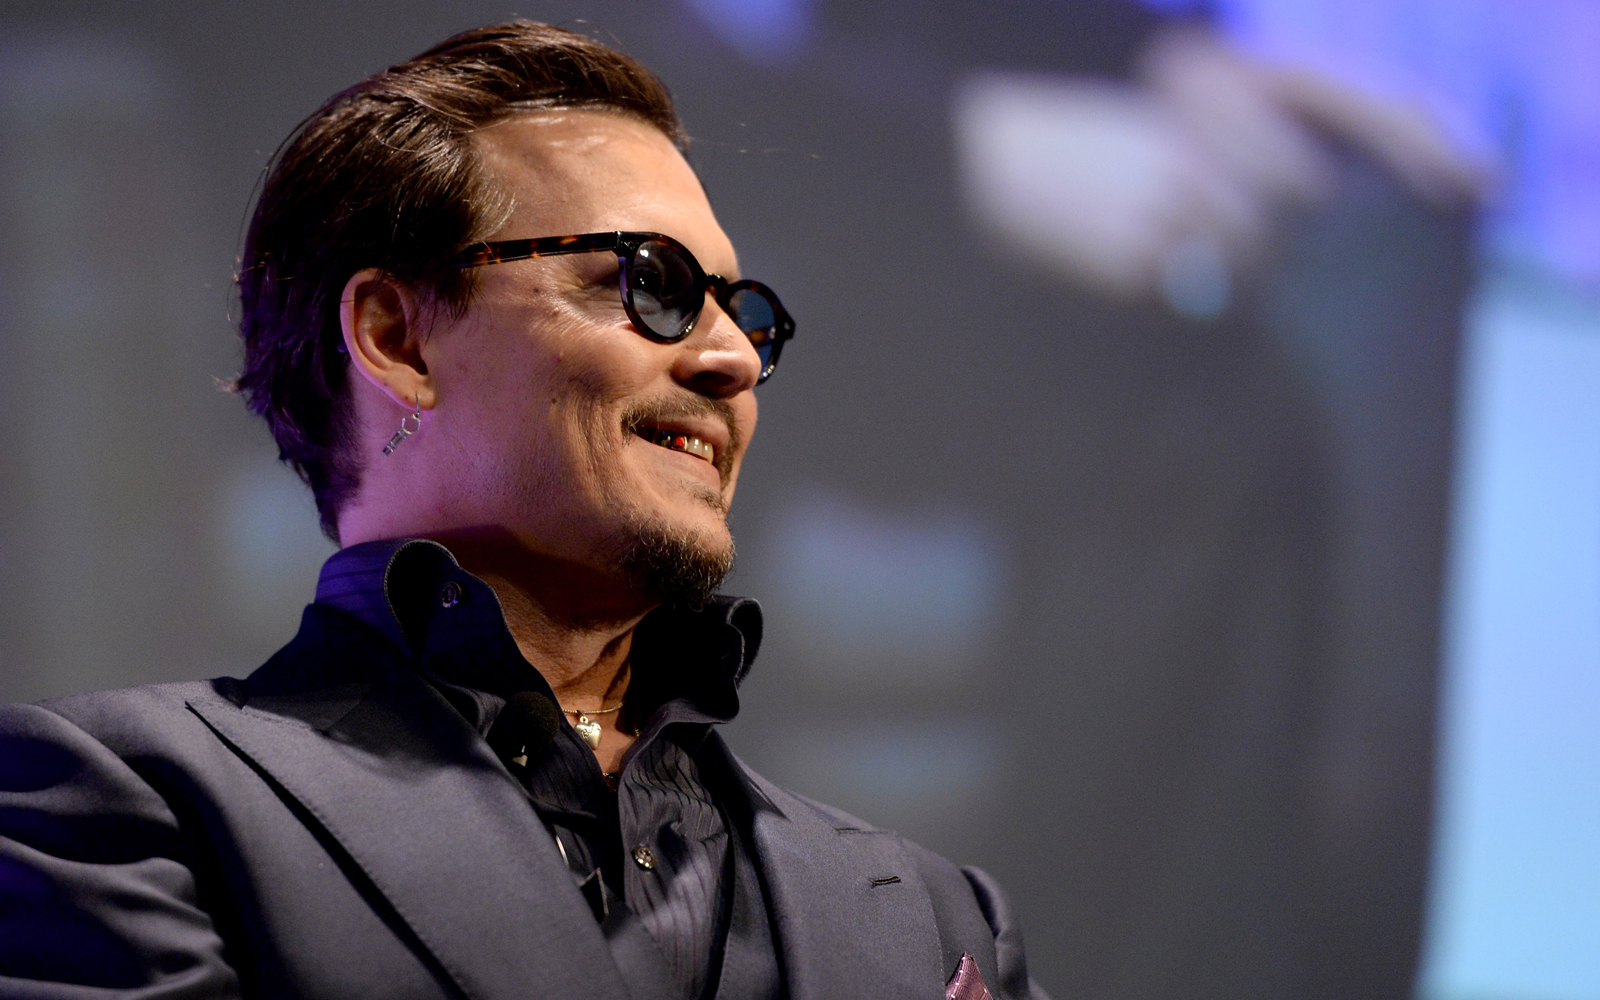 Johnny Depp Apparently Spends $30,000 a Month on Wine